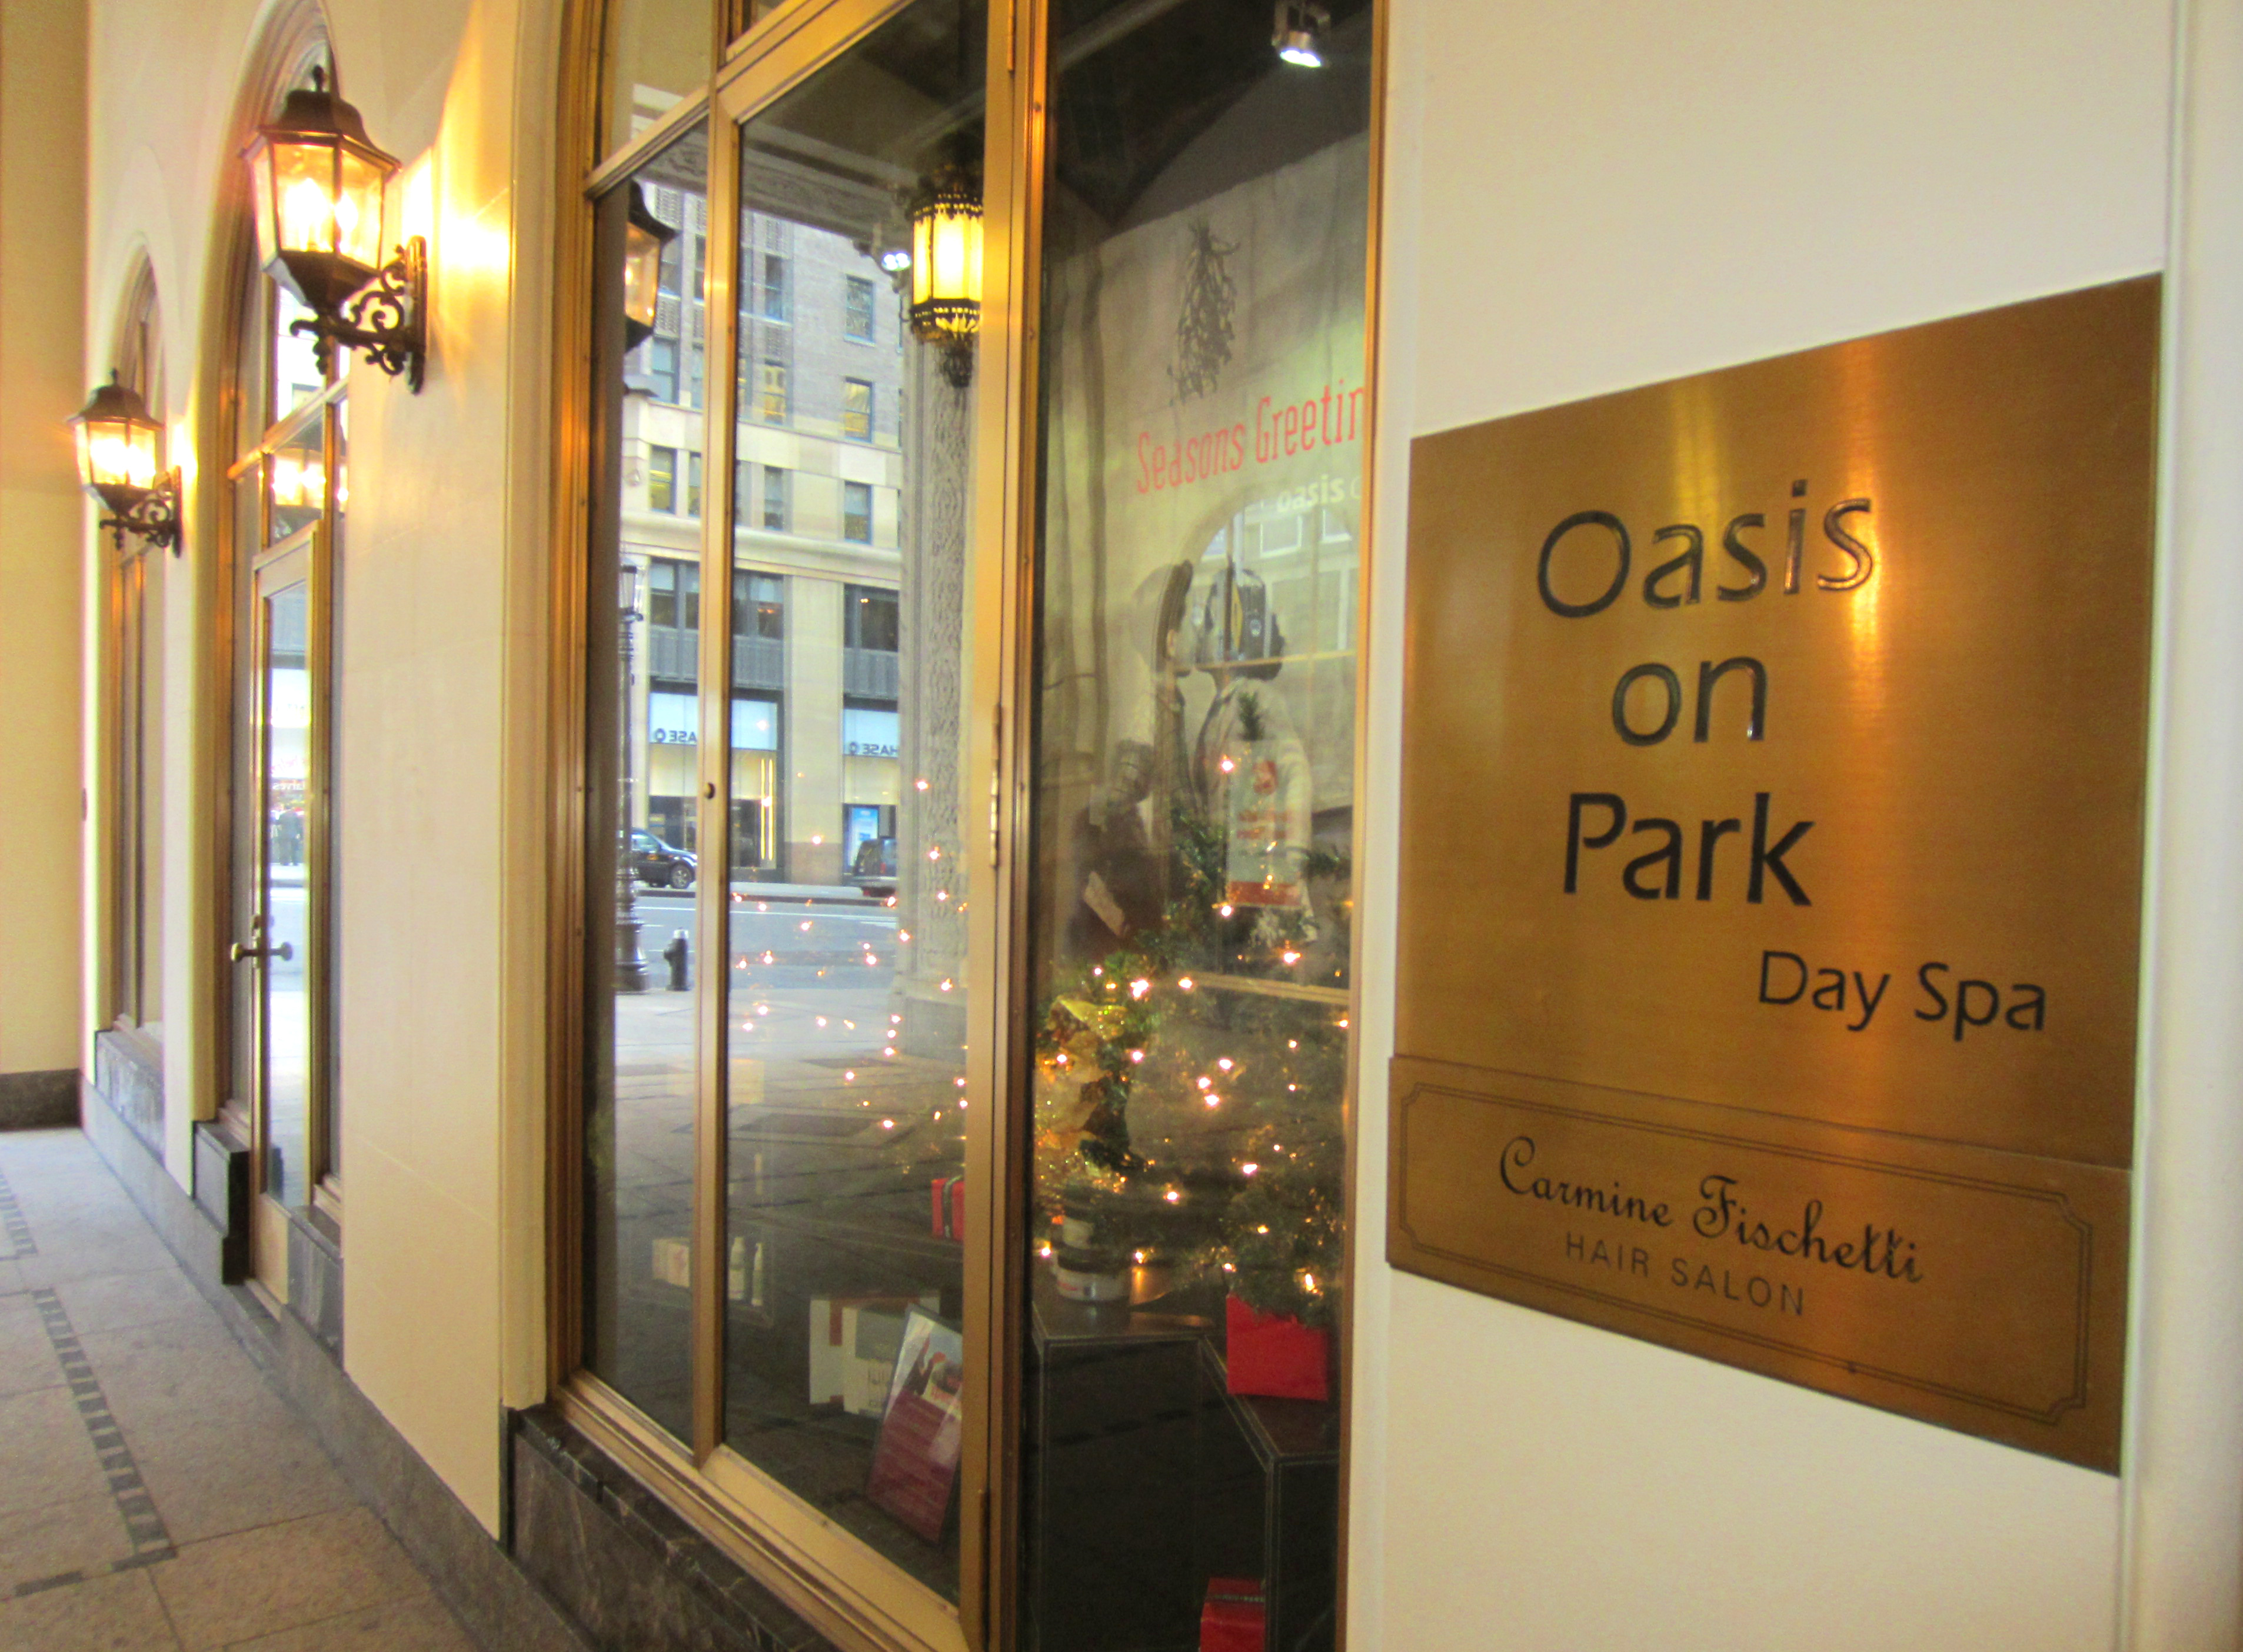 Oasis Day spa New York sights